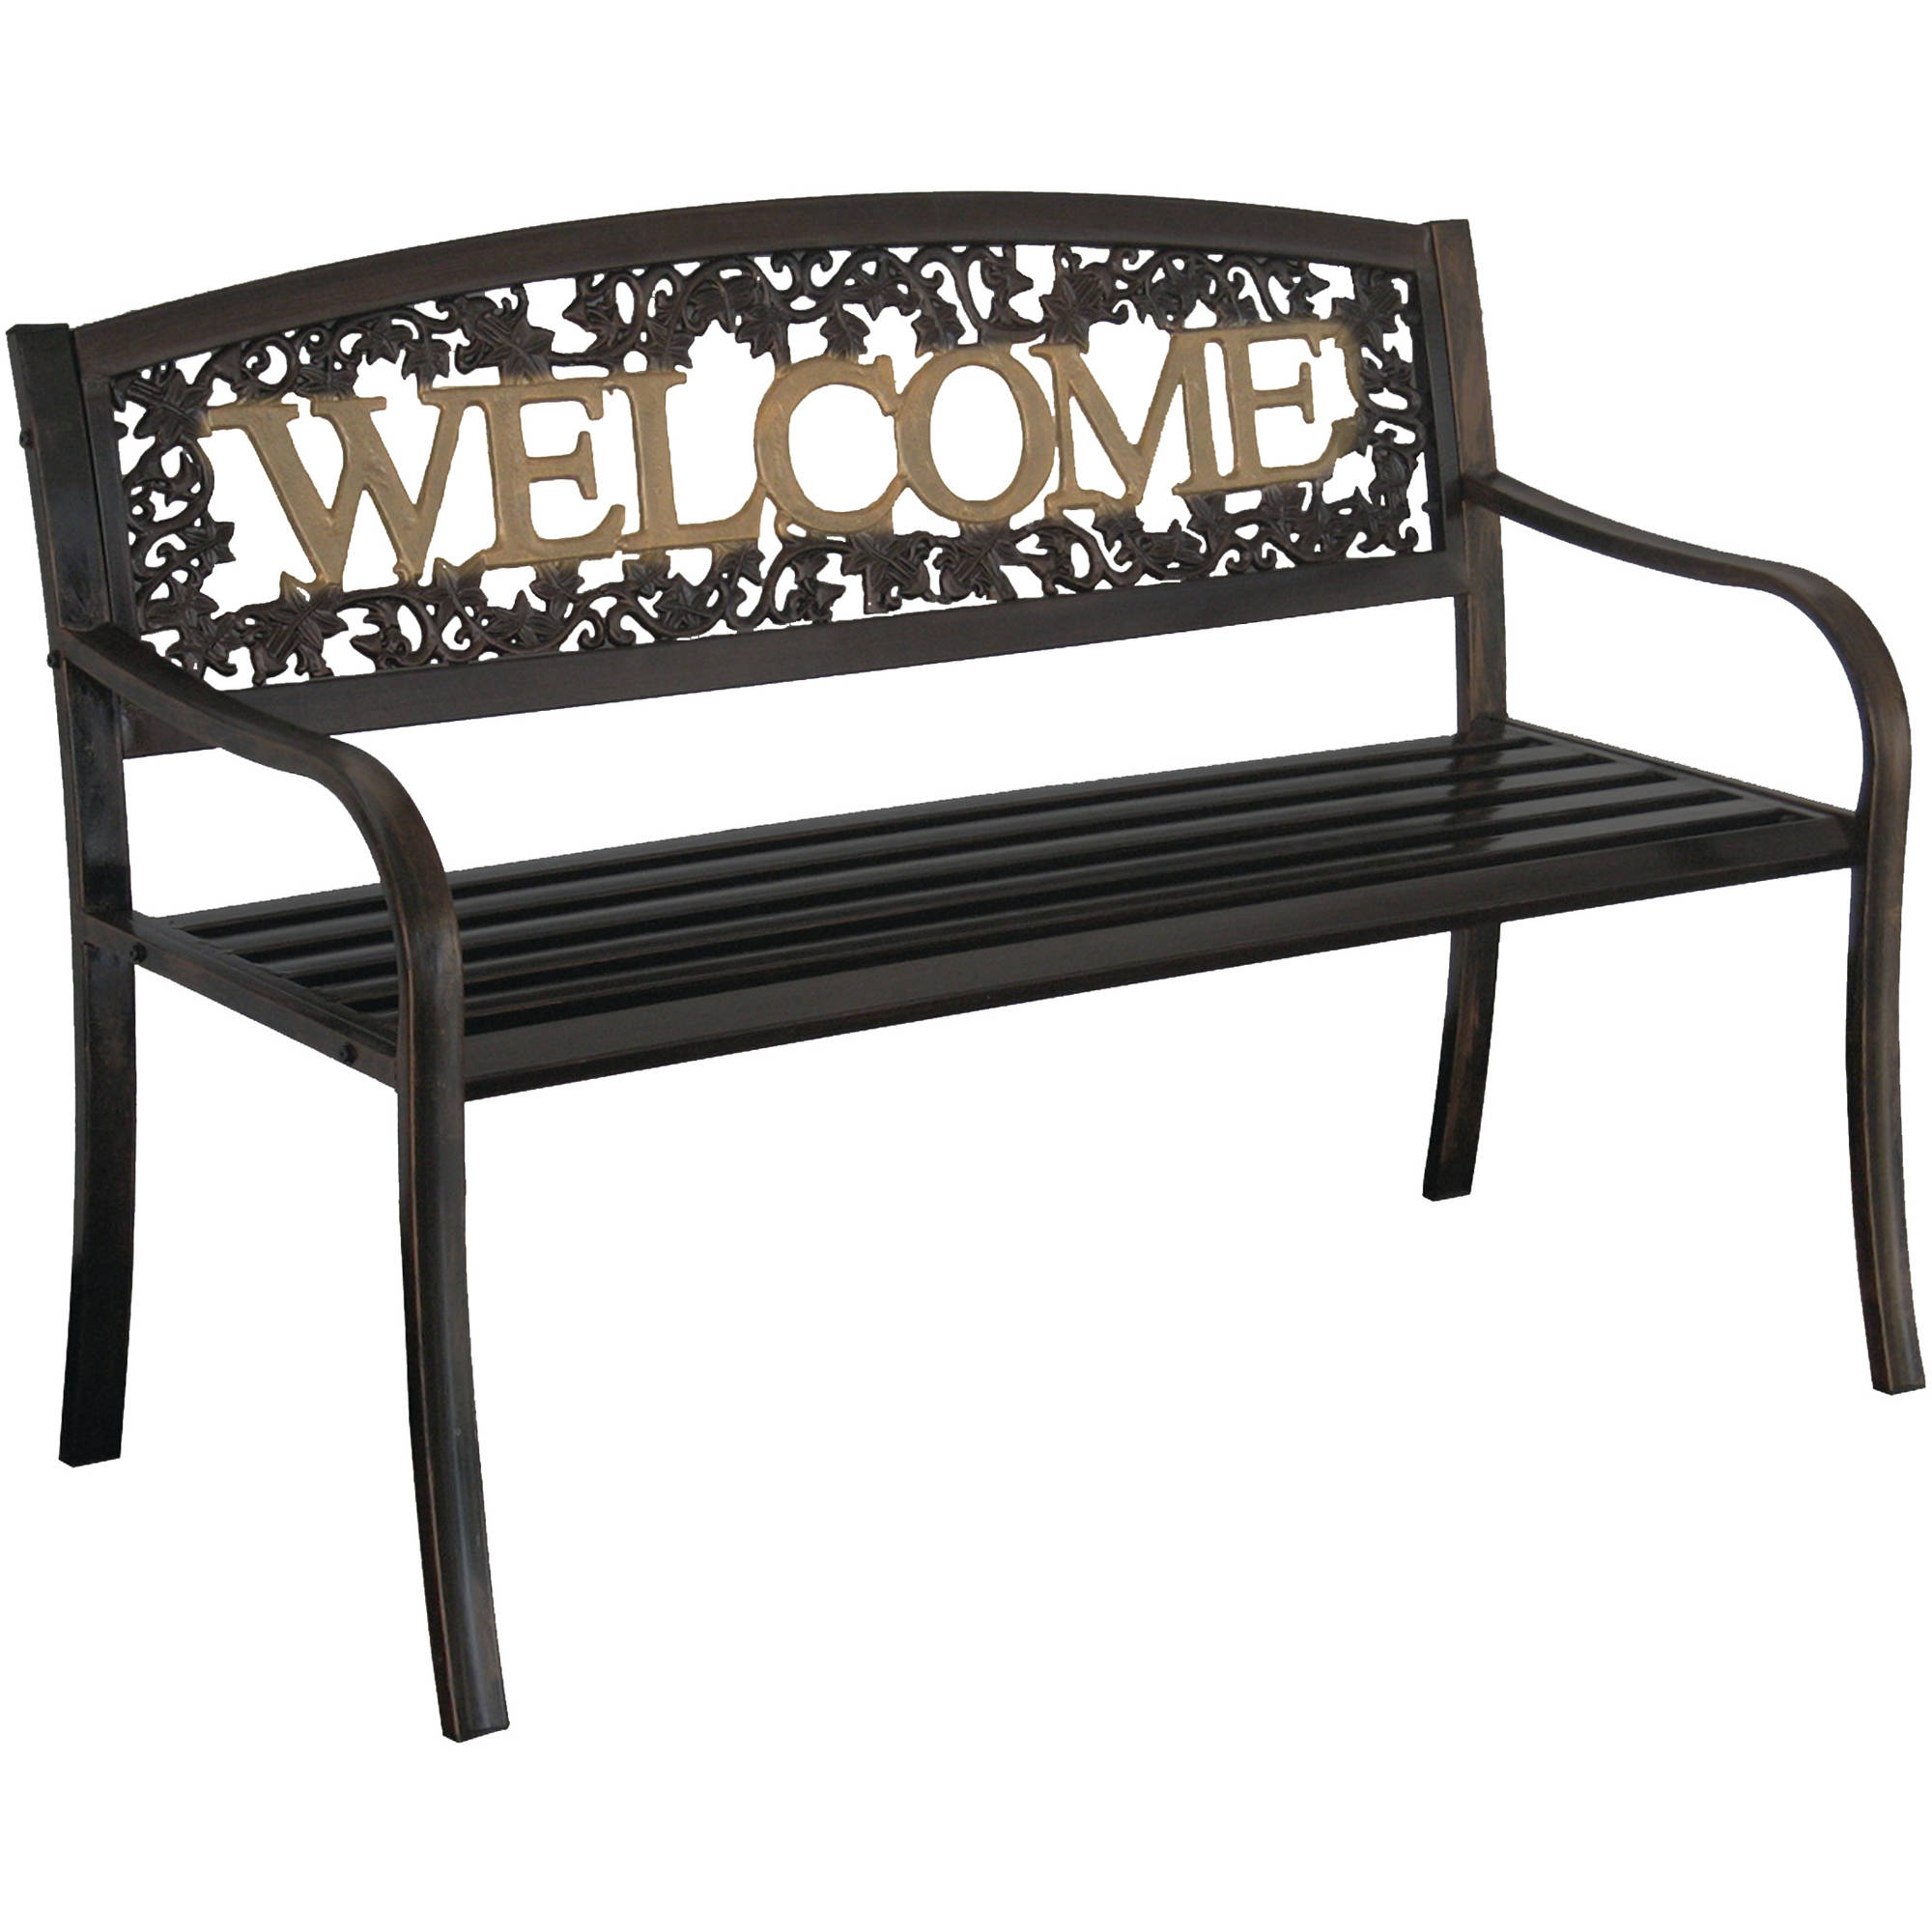 Leigh Country Welcome Bench, Black/Gold